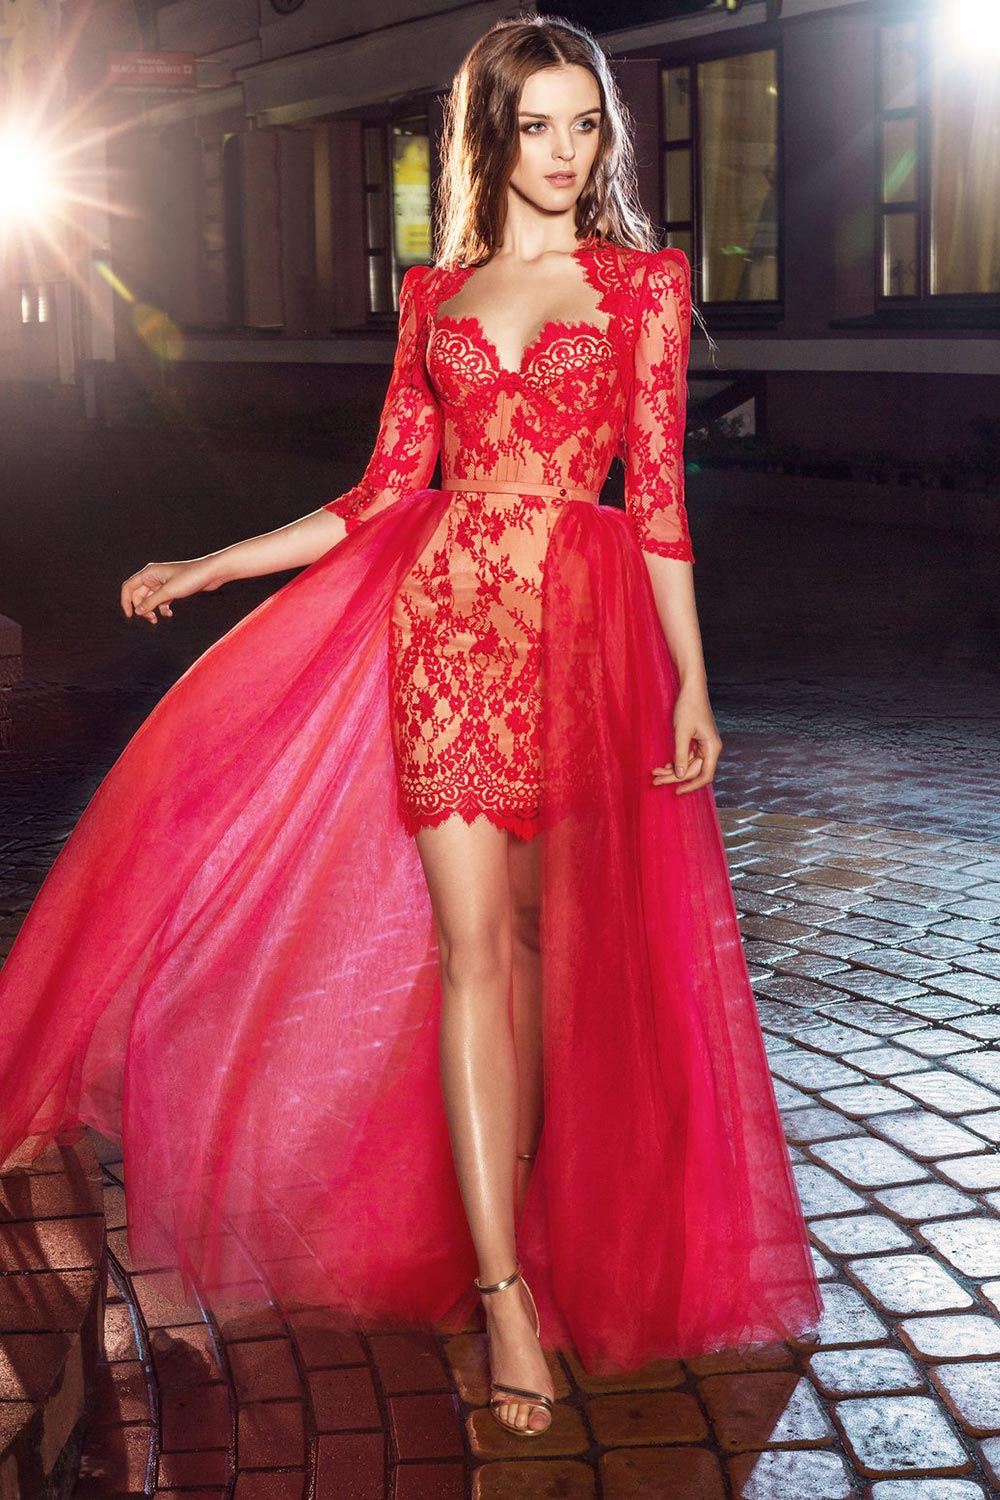 2019 prom, short fitted lace cocktail dress with bustier top, comes with long or short sleeves bolero and detachable tulle skirt, available in red, light green, ivory